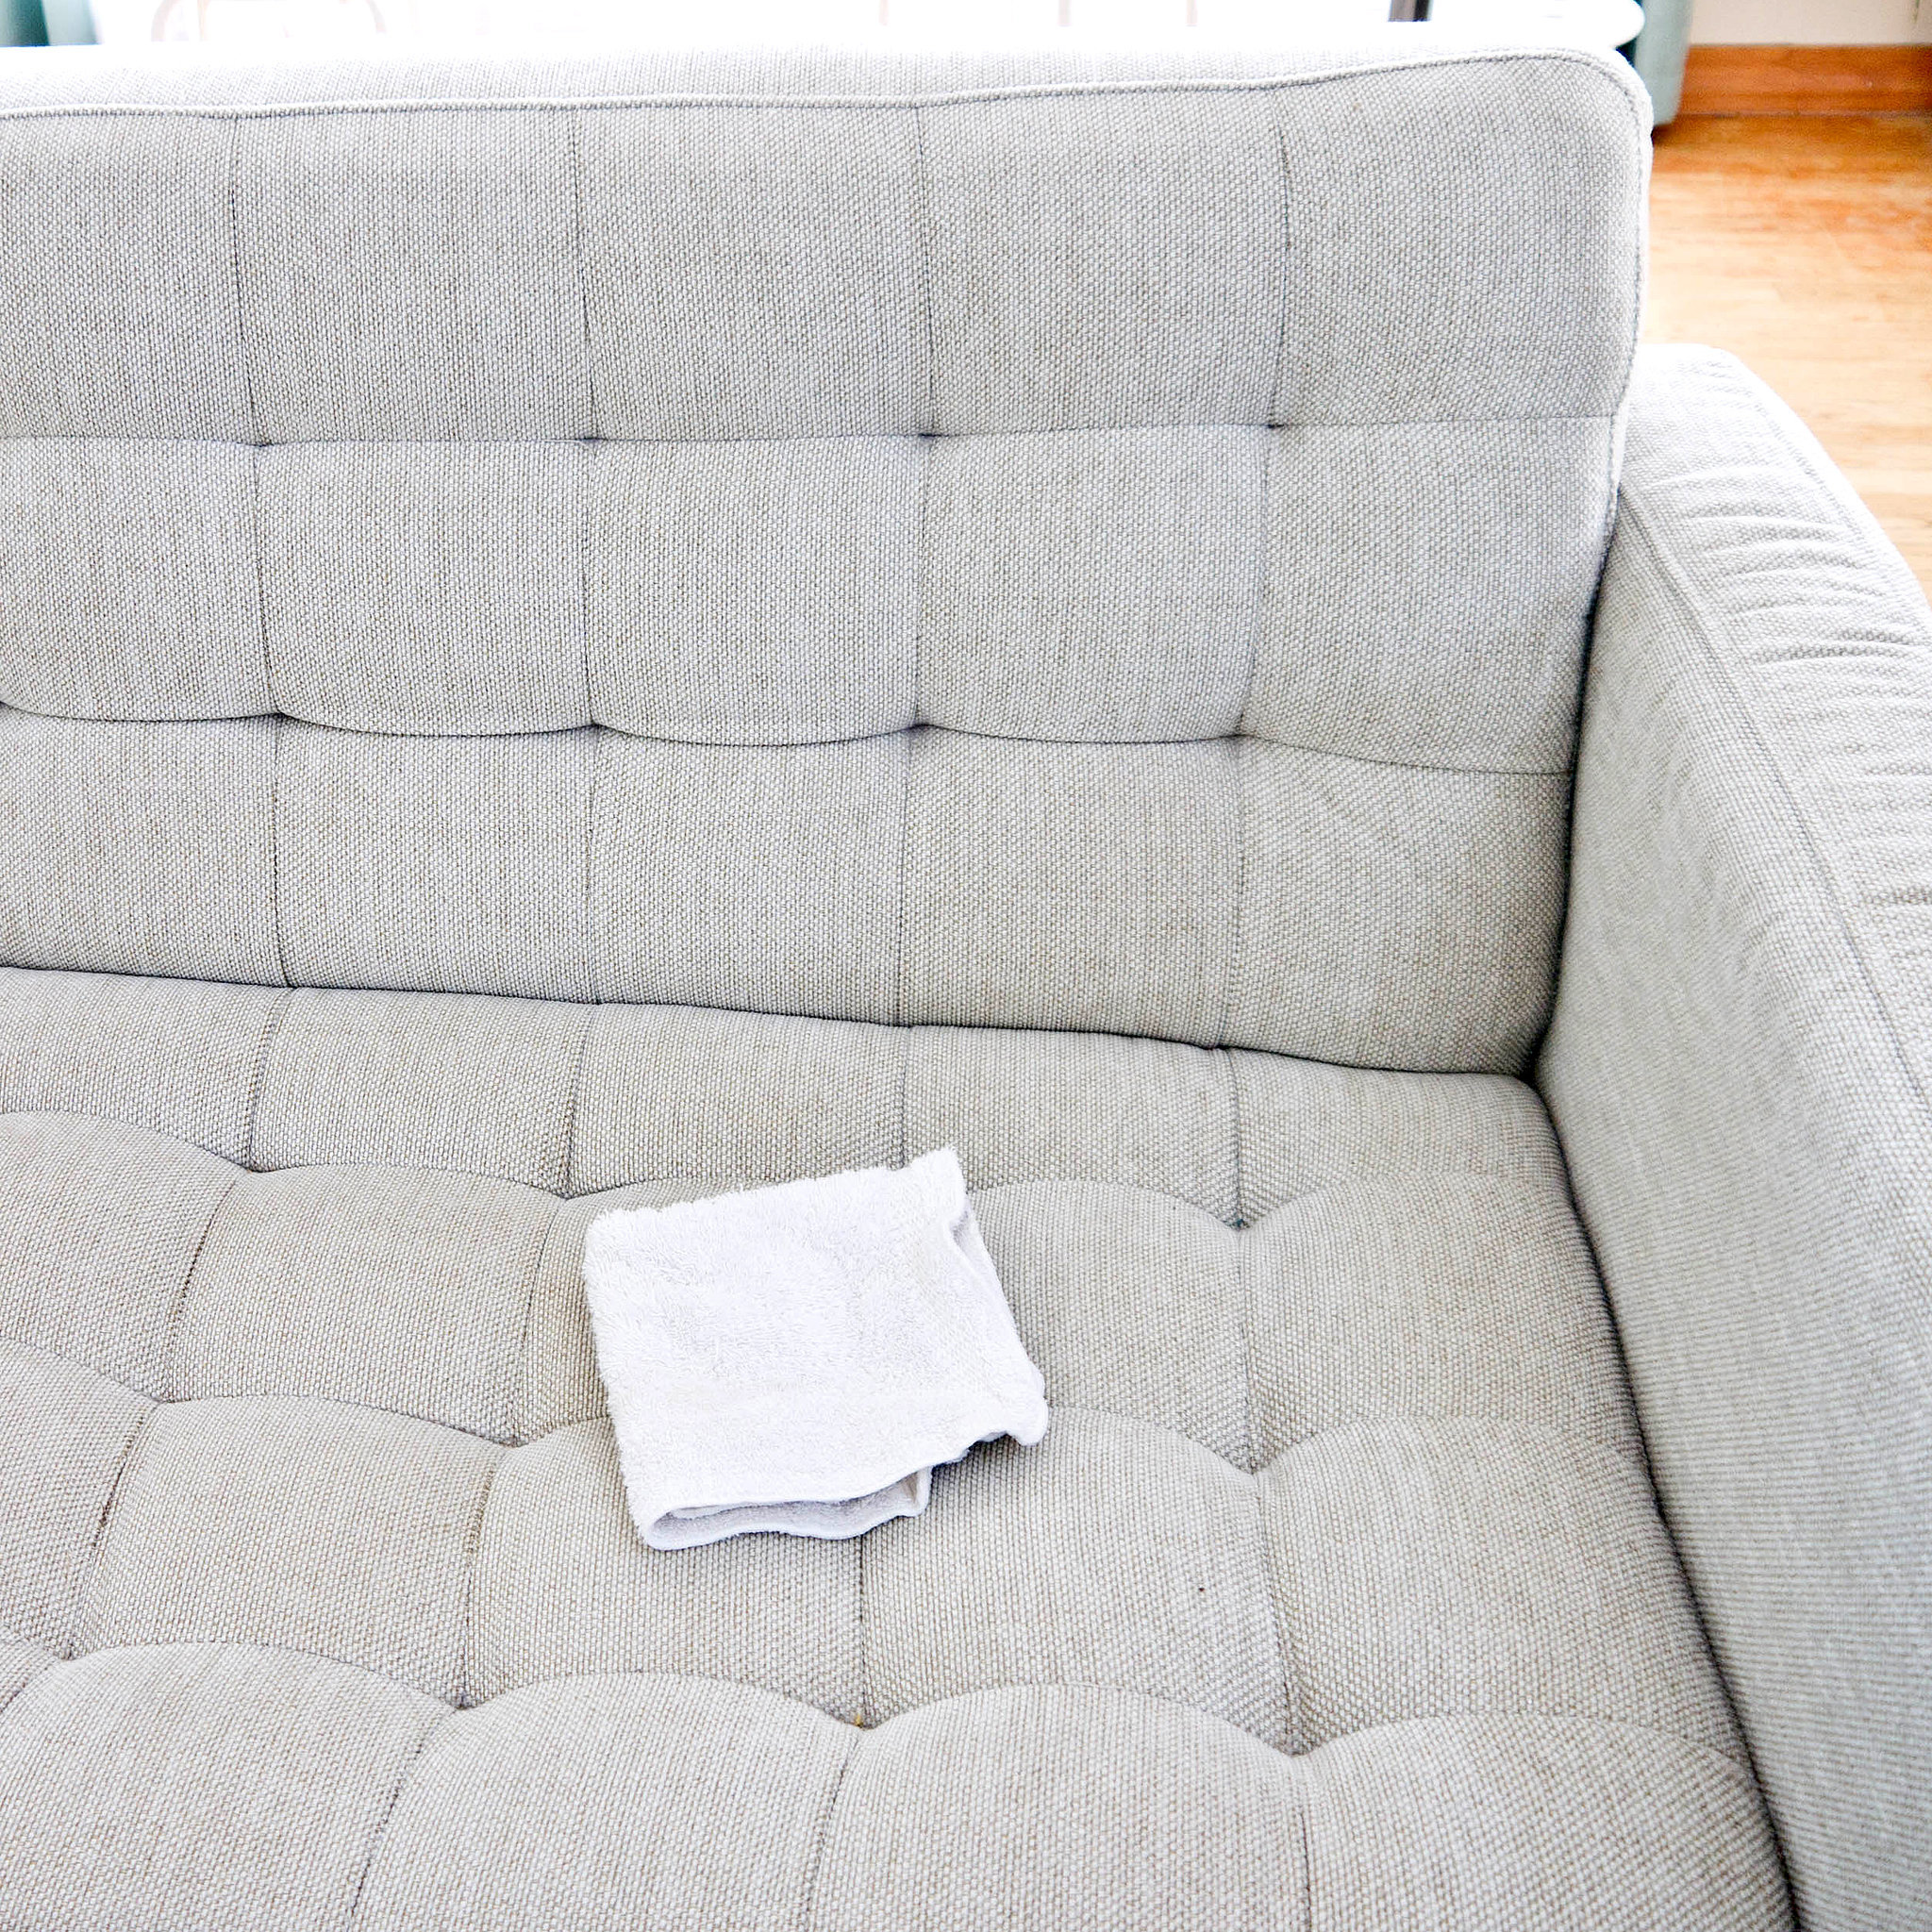 How to Clean a Natural Fabric Couch